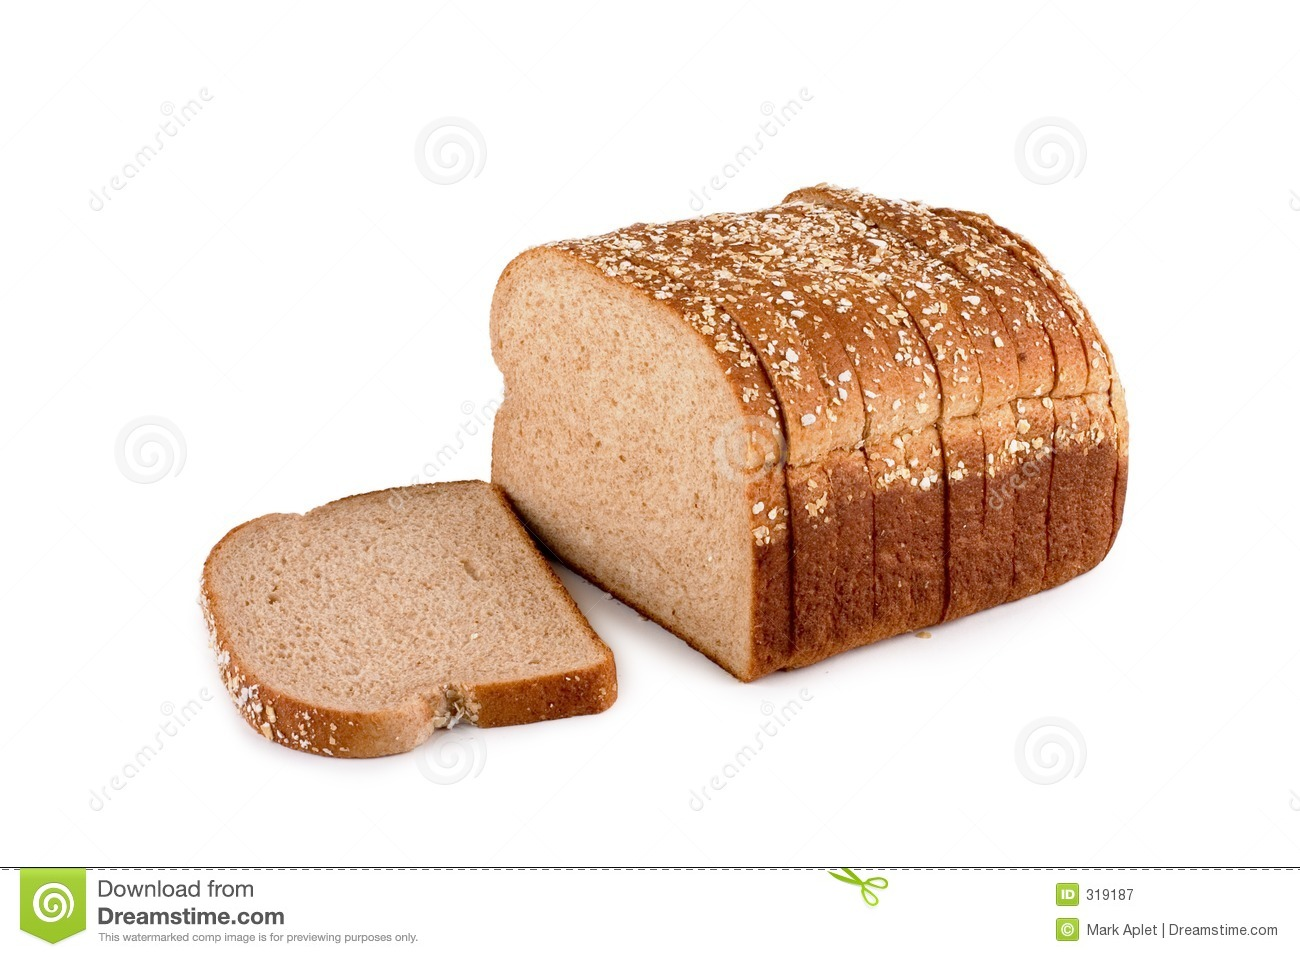 Loaf of whole wheat bread isolated on white with a clipping path.